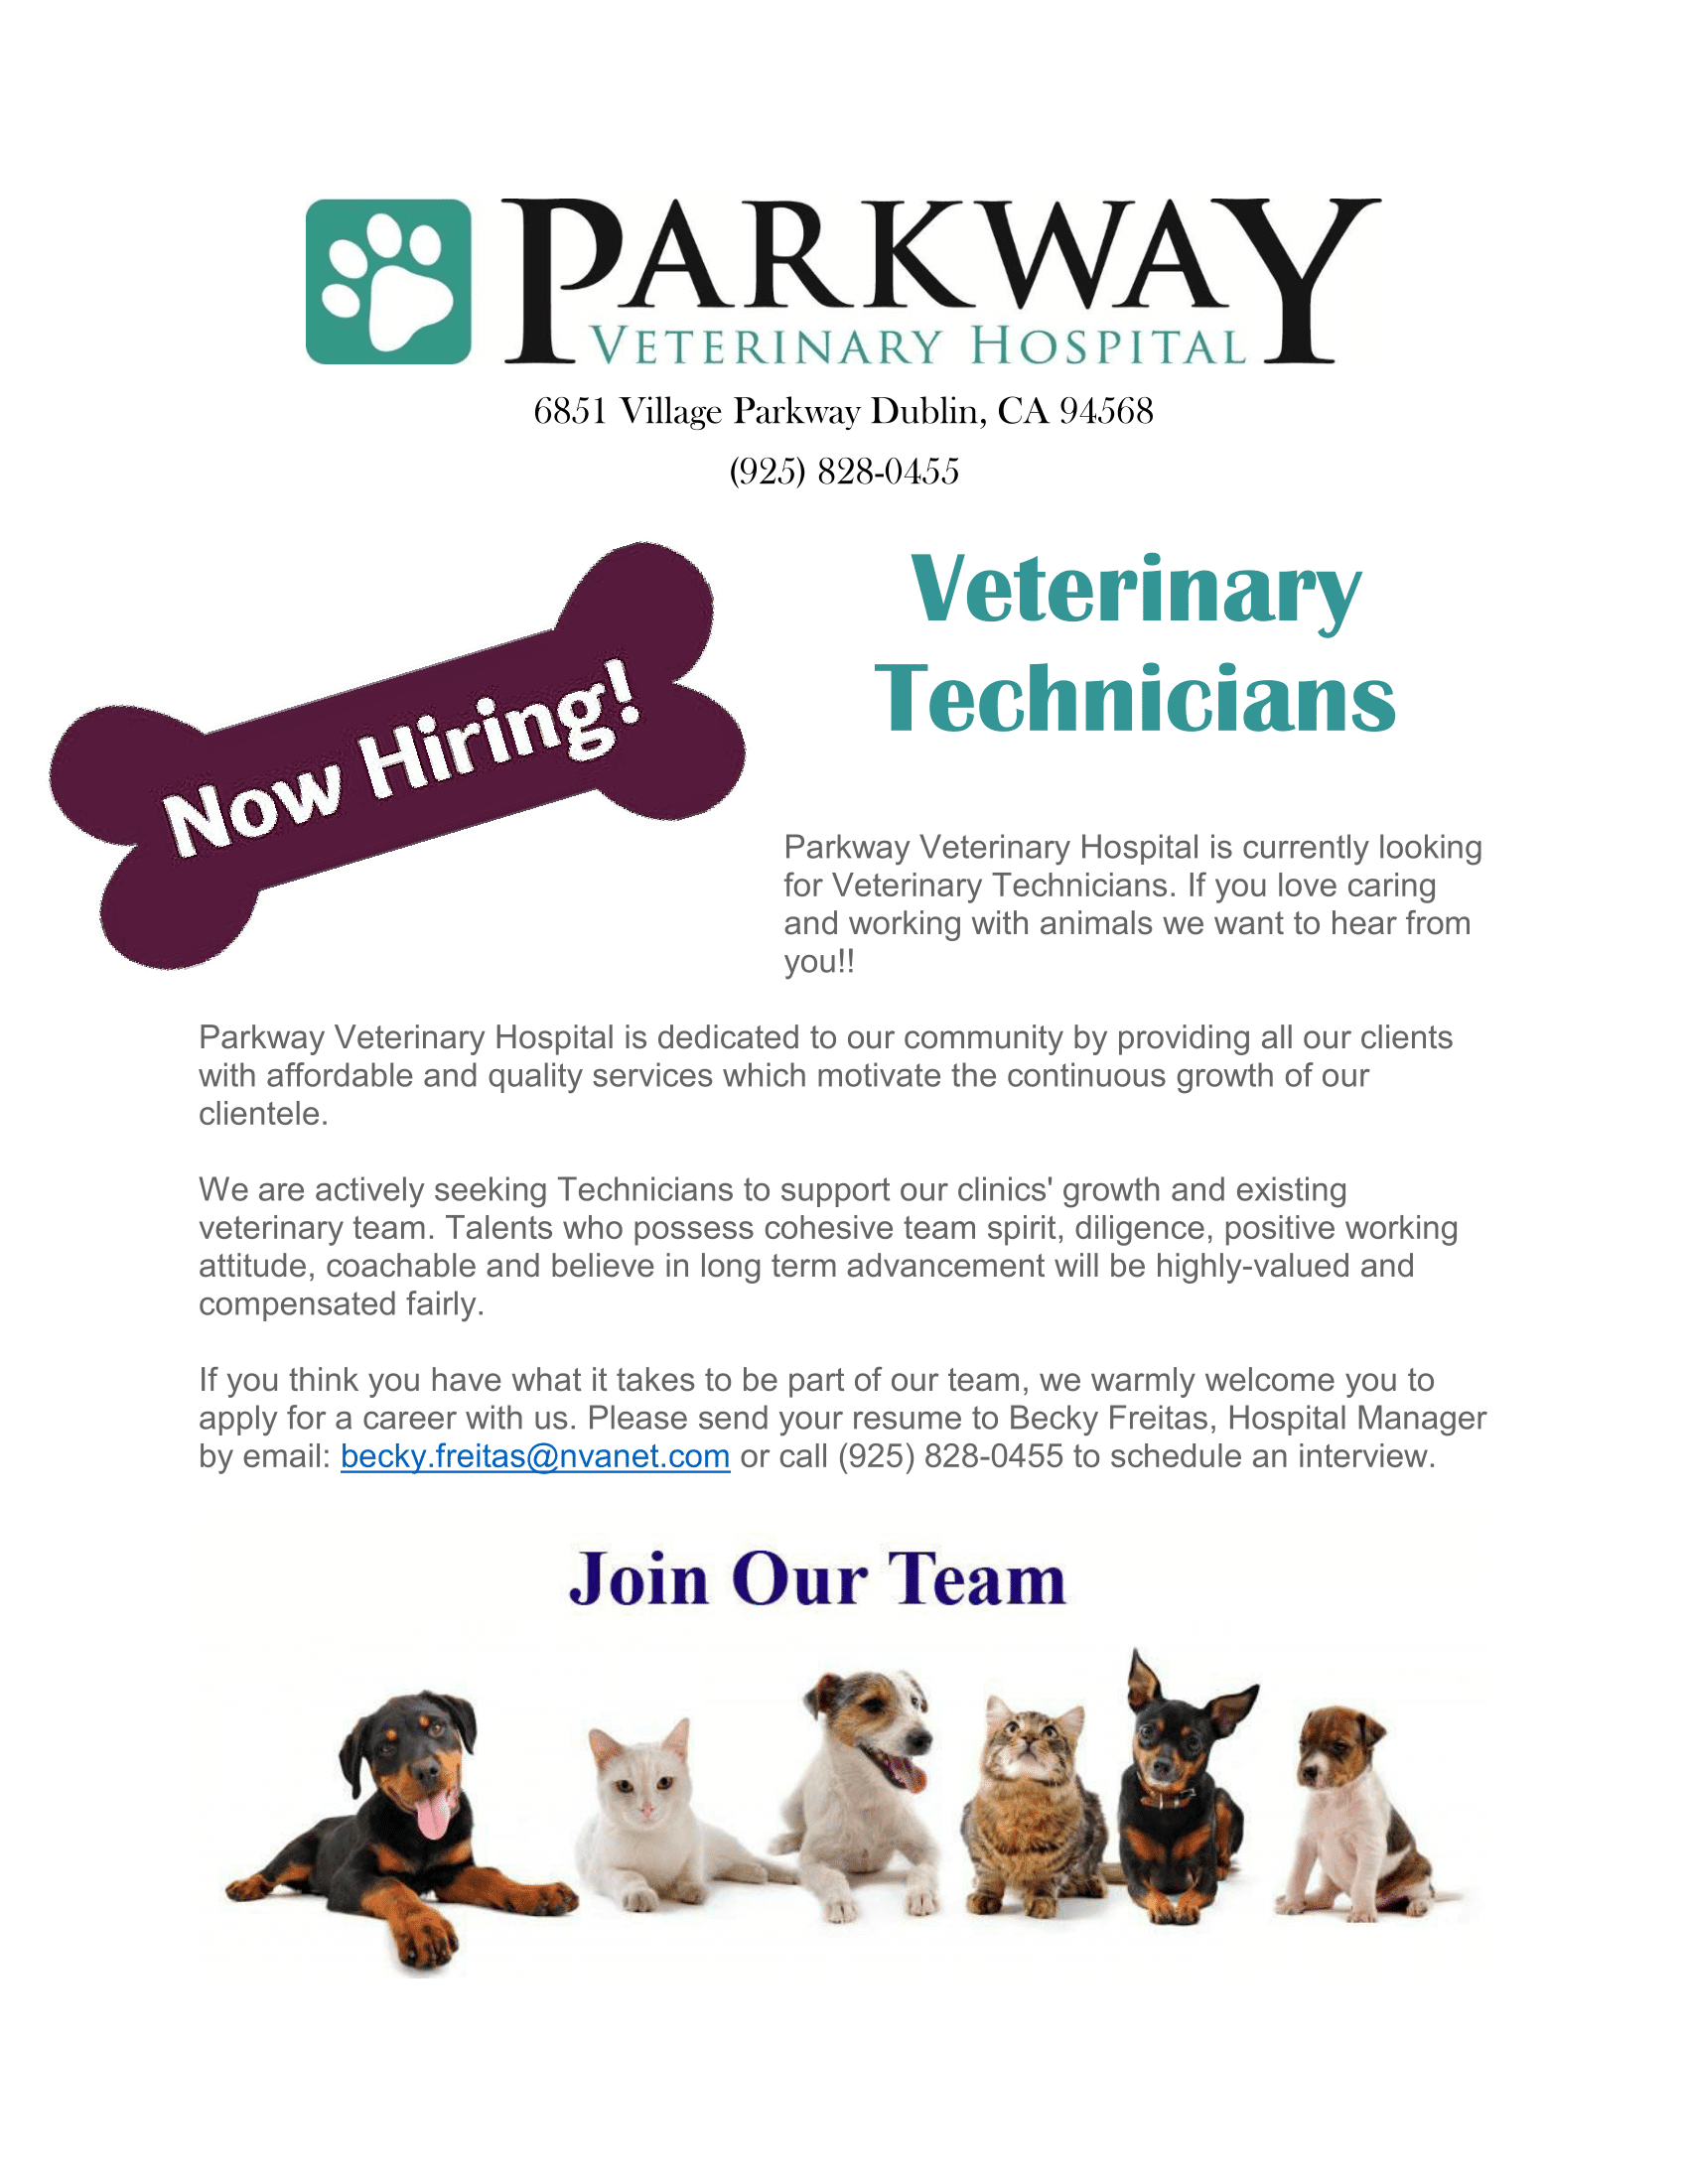 Parkway Veterinary Hospital hiring form for veterinary technician